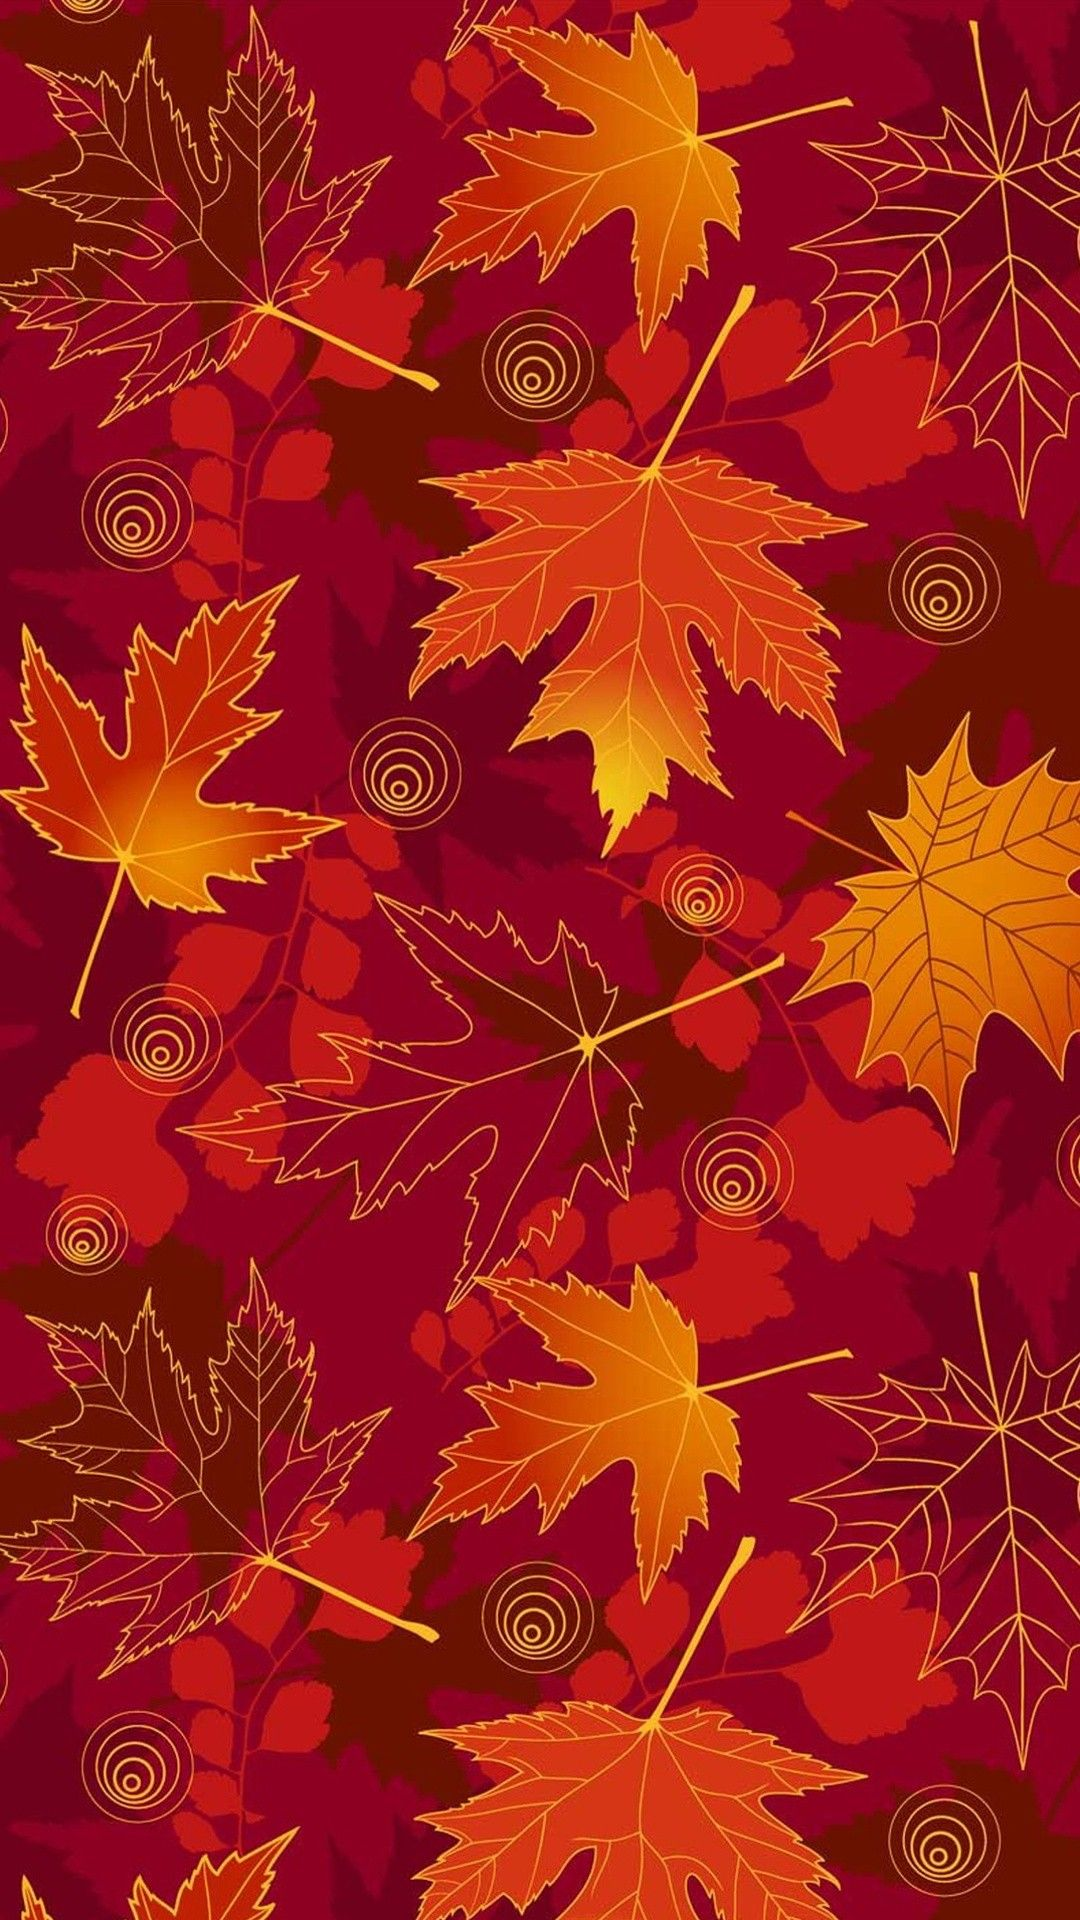 Pin By Eric And Carrie Carden On Colorful Leaves Halloween